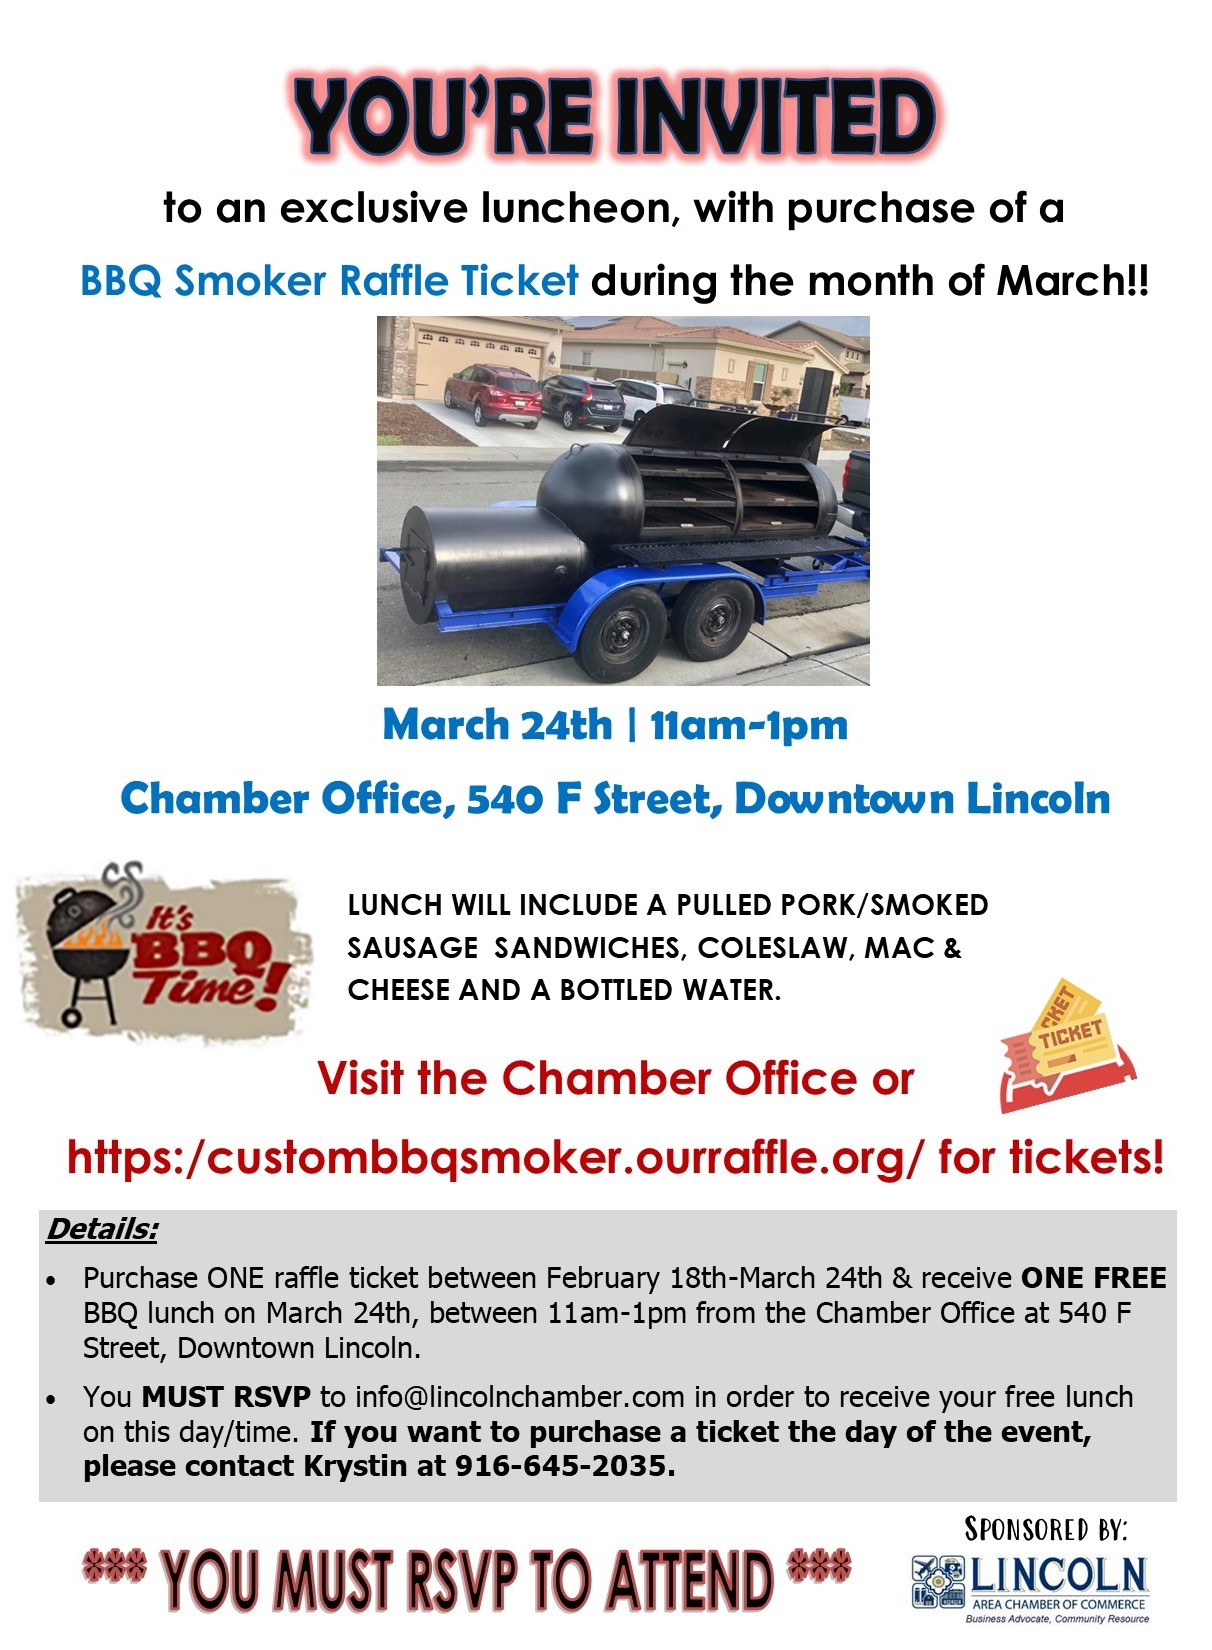 March 24th Luncheon